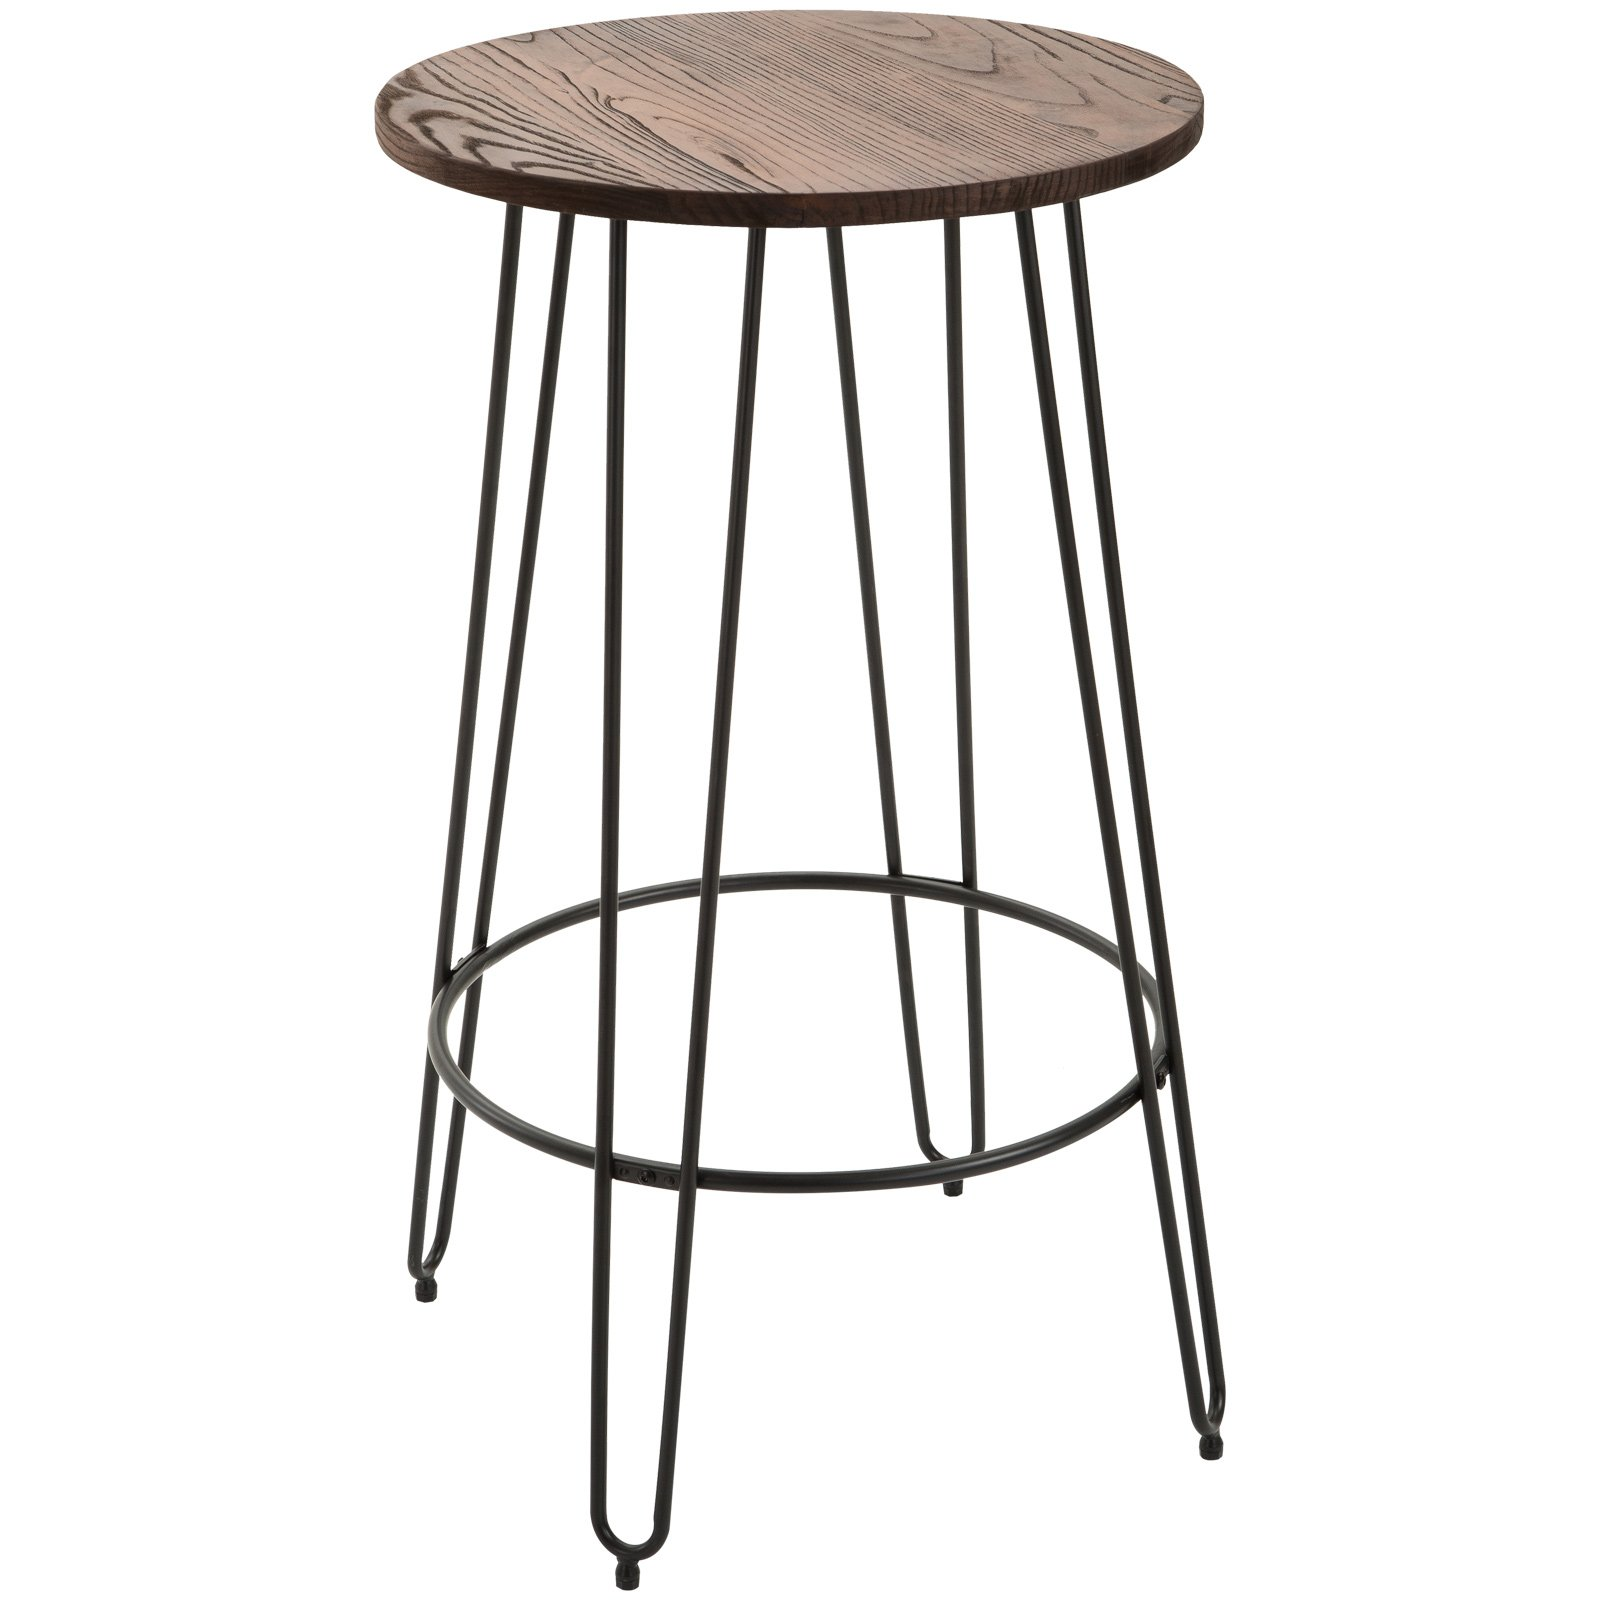 HOMCOM 42'' Retro Elm Wood Round Top Bar Table Pub Bistro Patio Table Lightweight Steel